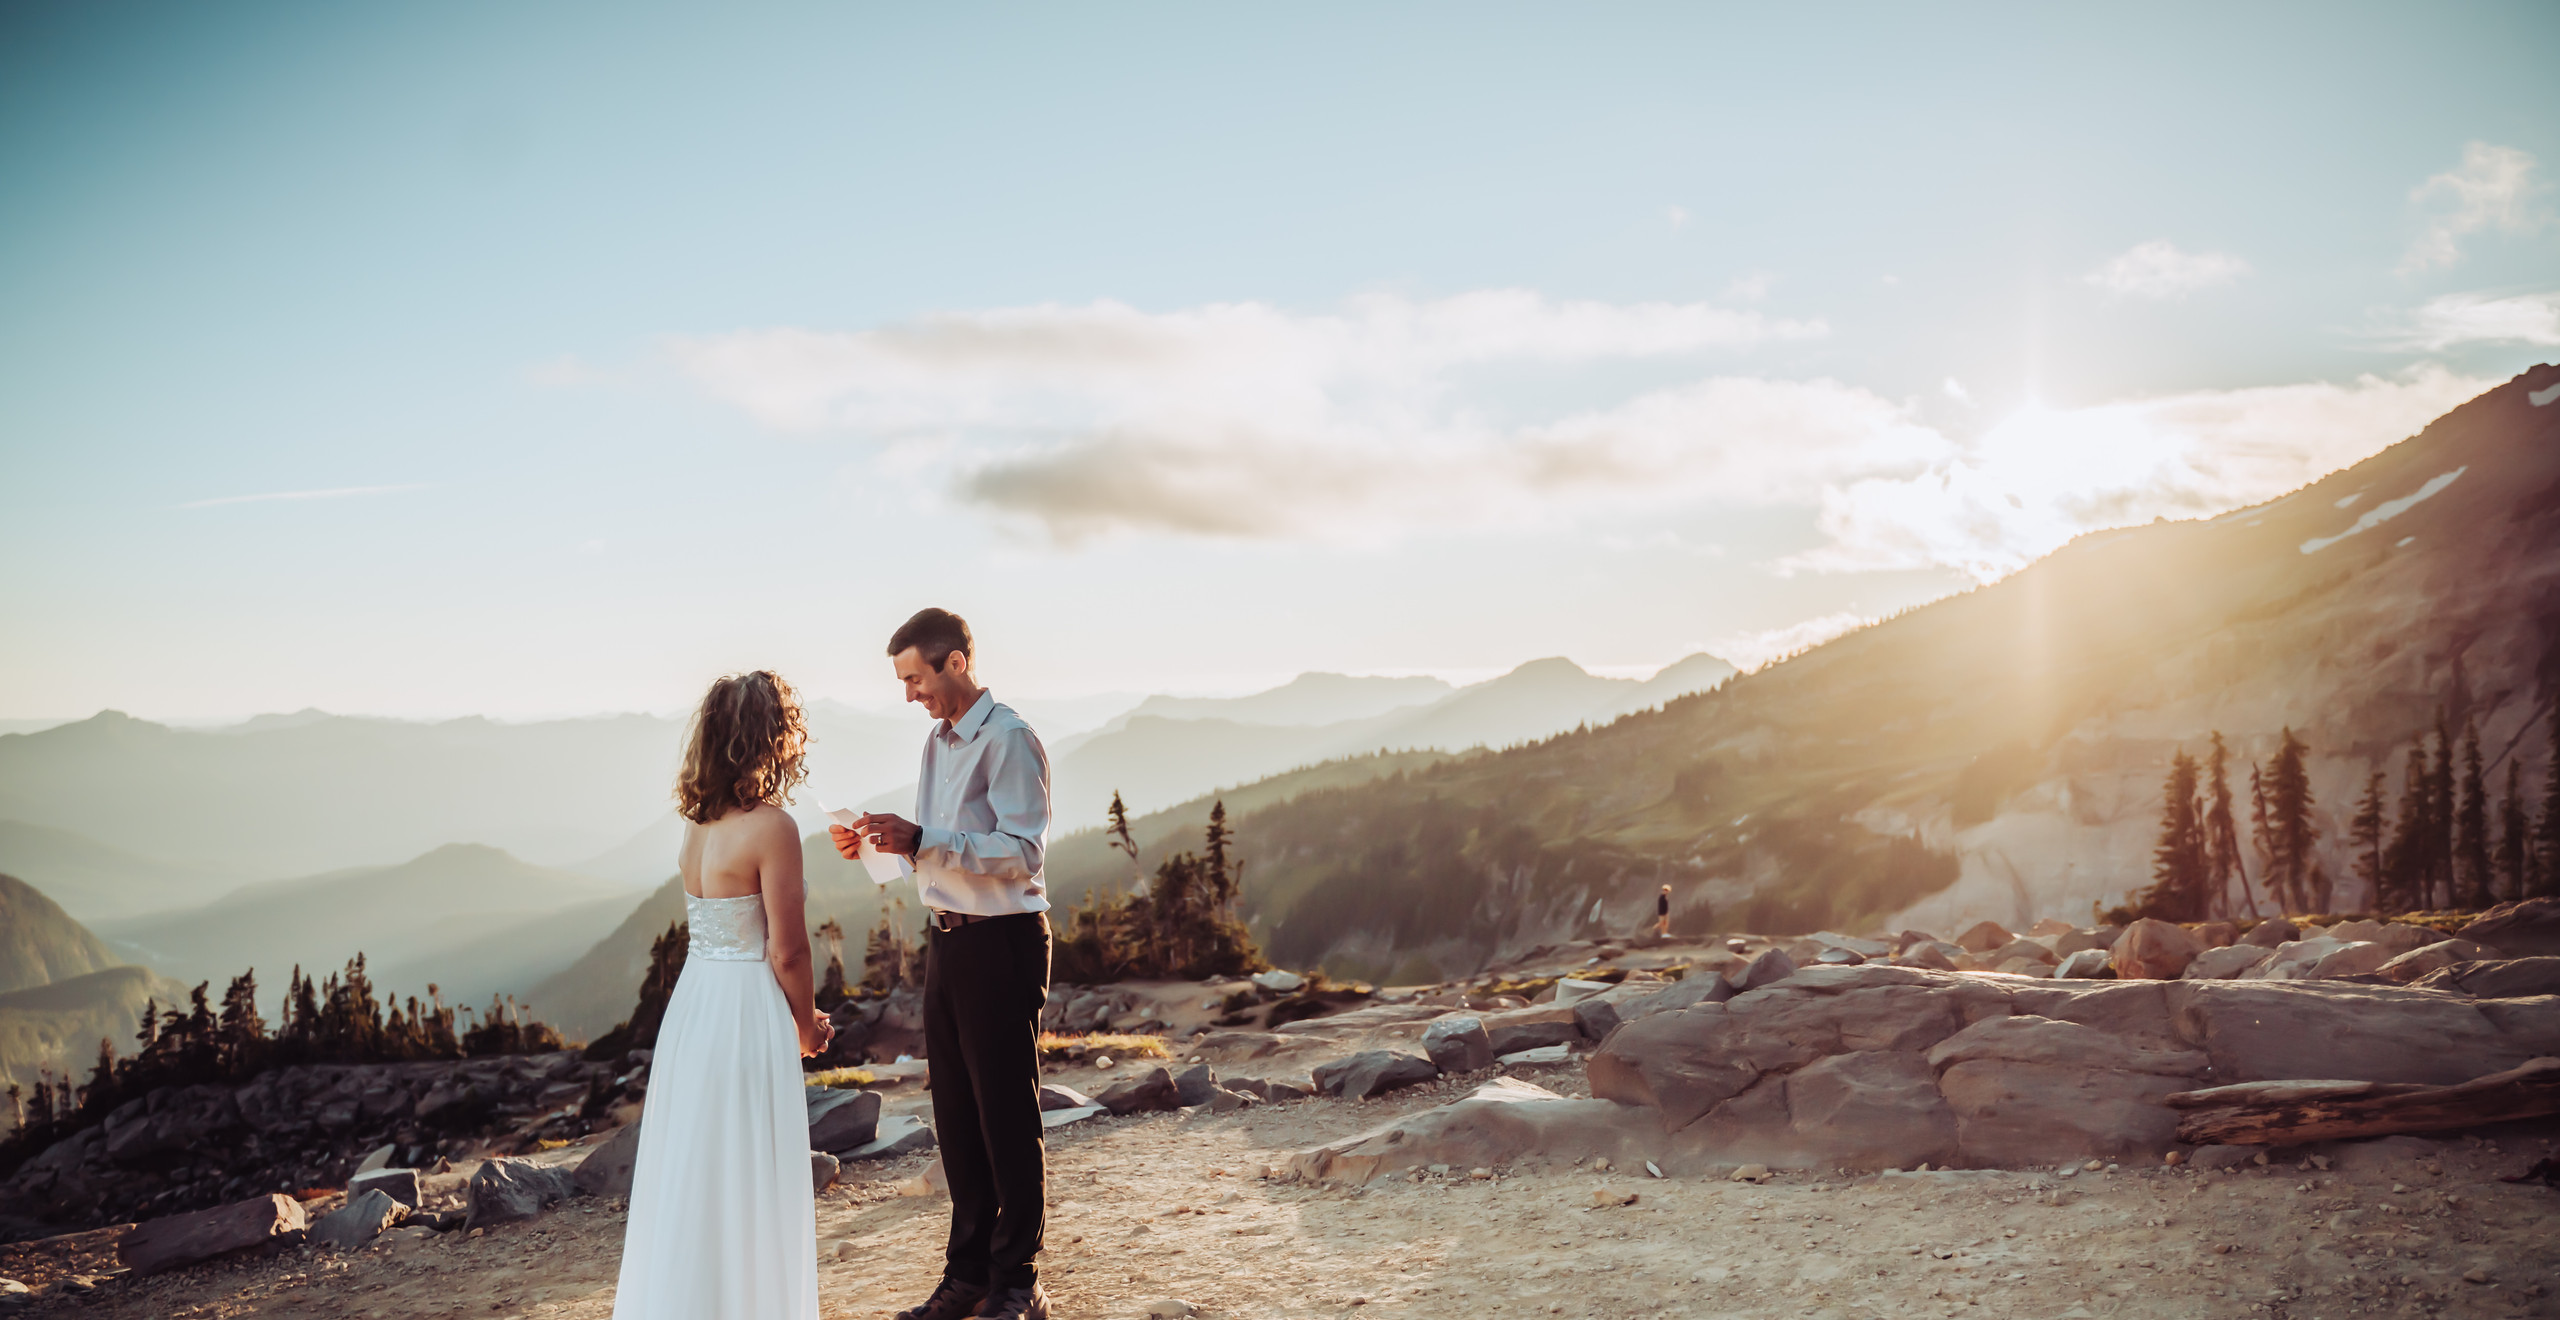 Groom reading his vows to his bride with Mt. Rainier in the background and a beautiful sunset